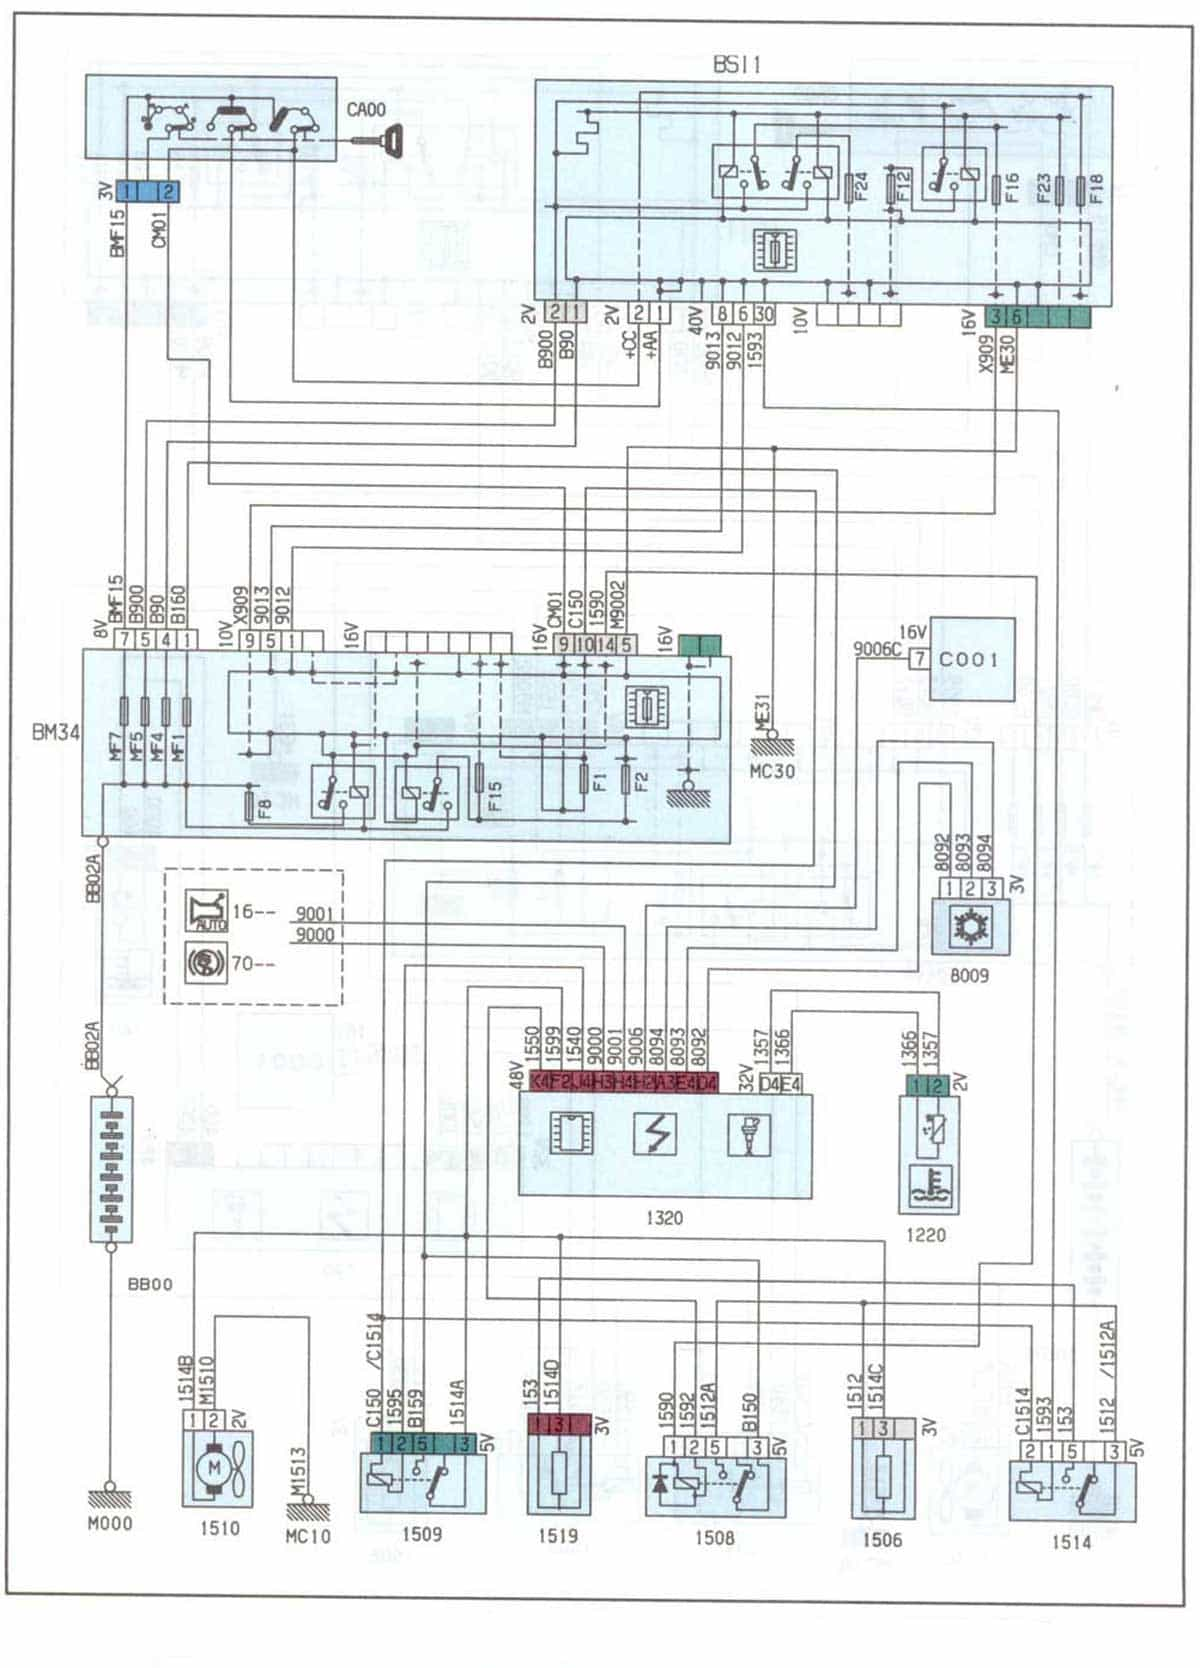 Citroen C5 Wiper Wiring Diagram - 62 Austin Healey Sprite Wiring Diagram  for Wiring Diagram Schematics | Citroen C5 Wiper Wiring Diagram |  | Wiring Diagram Schematics